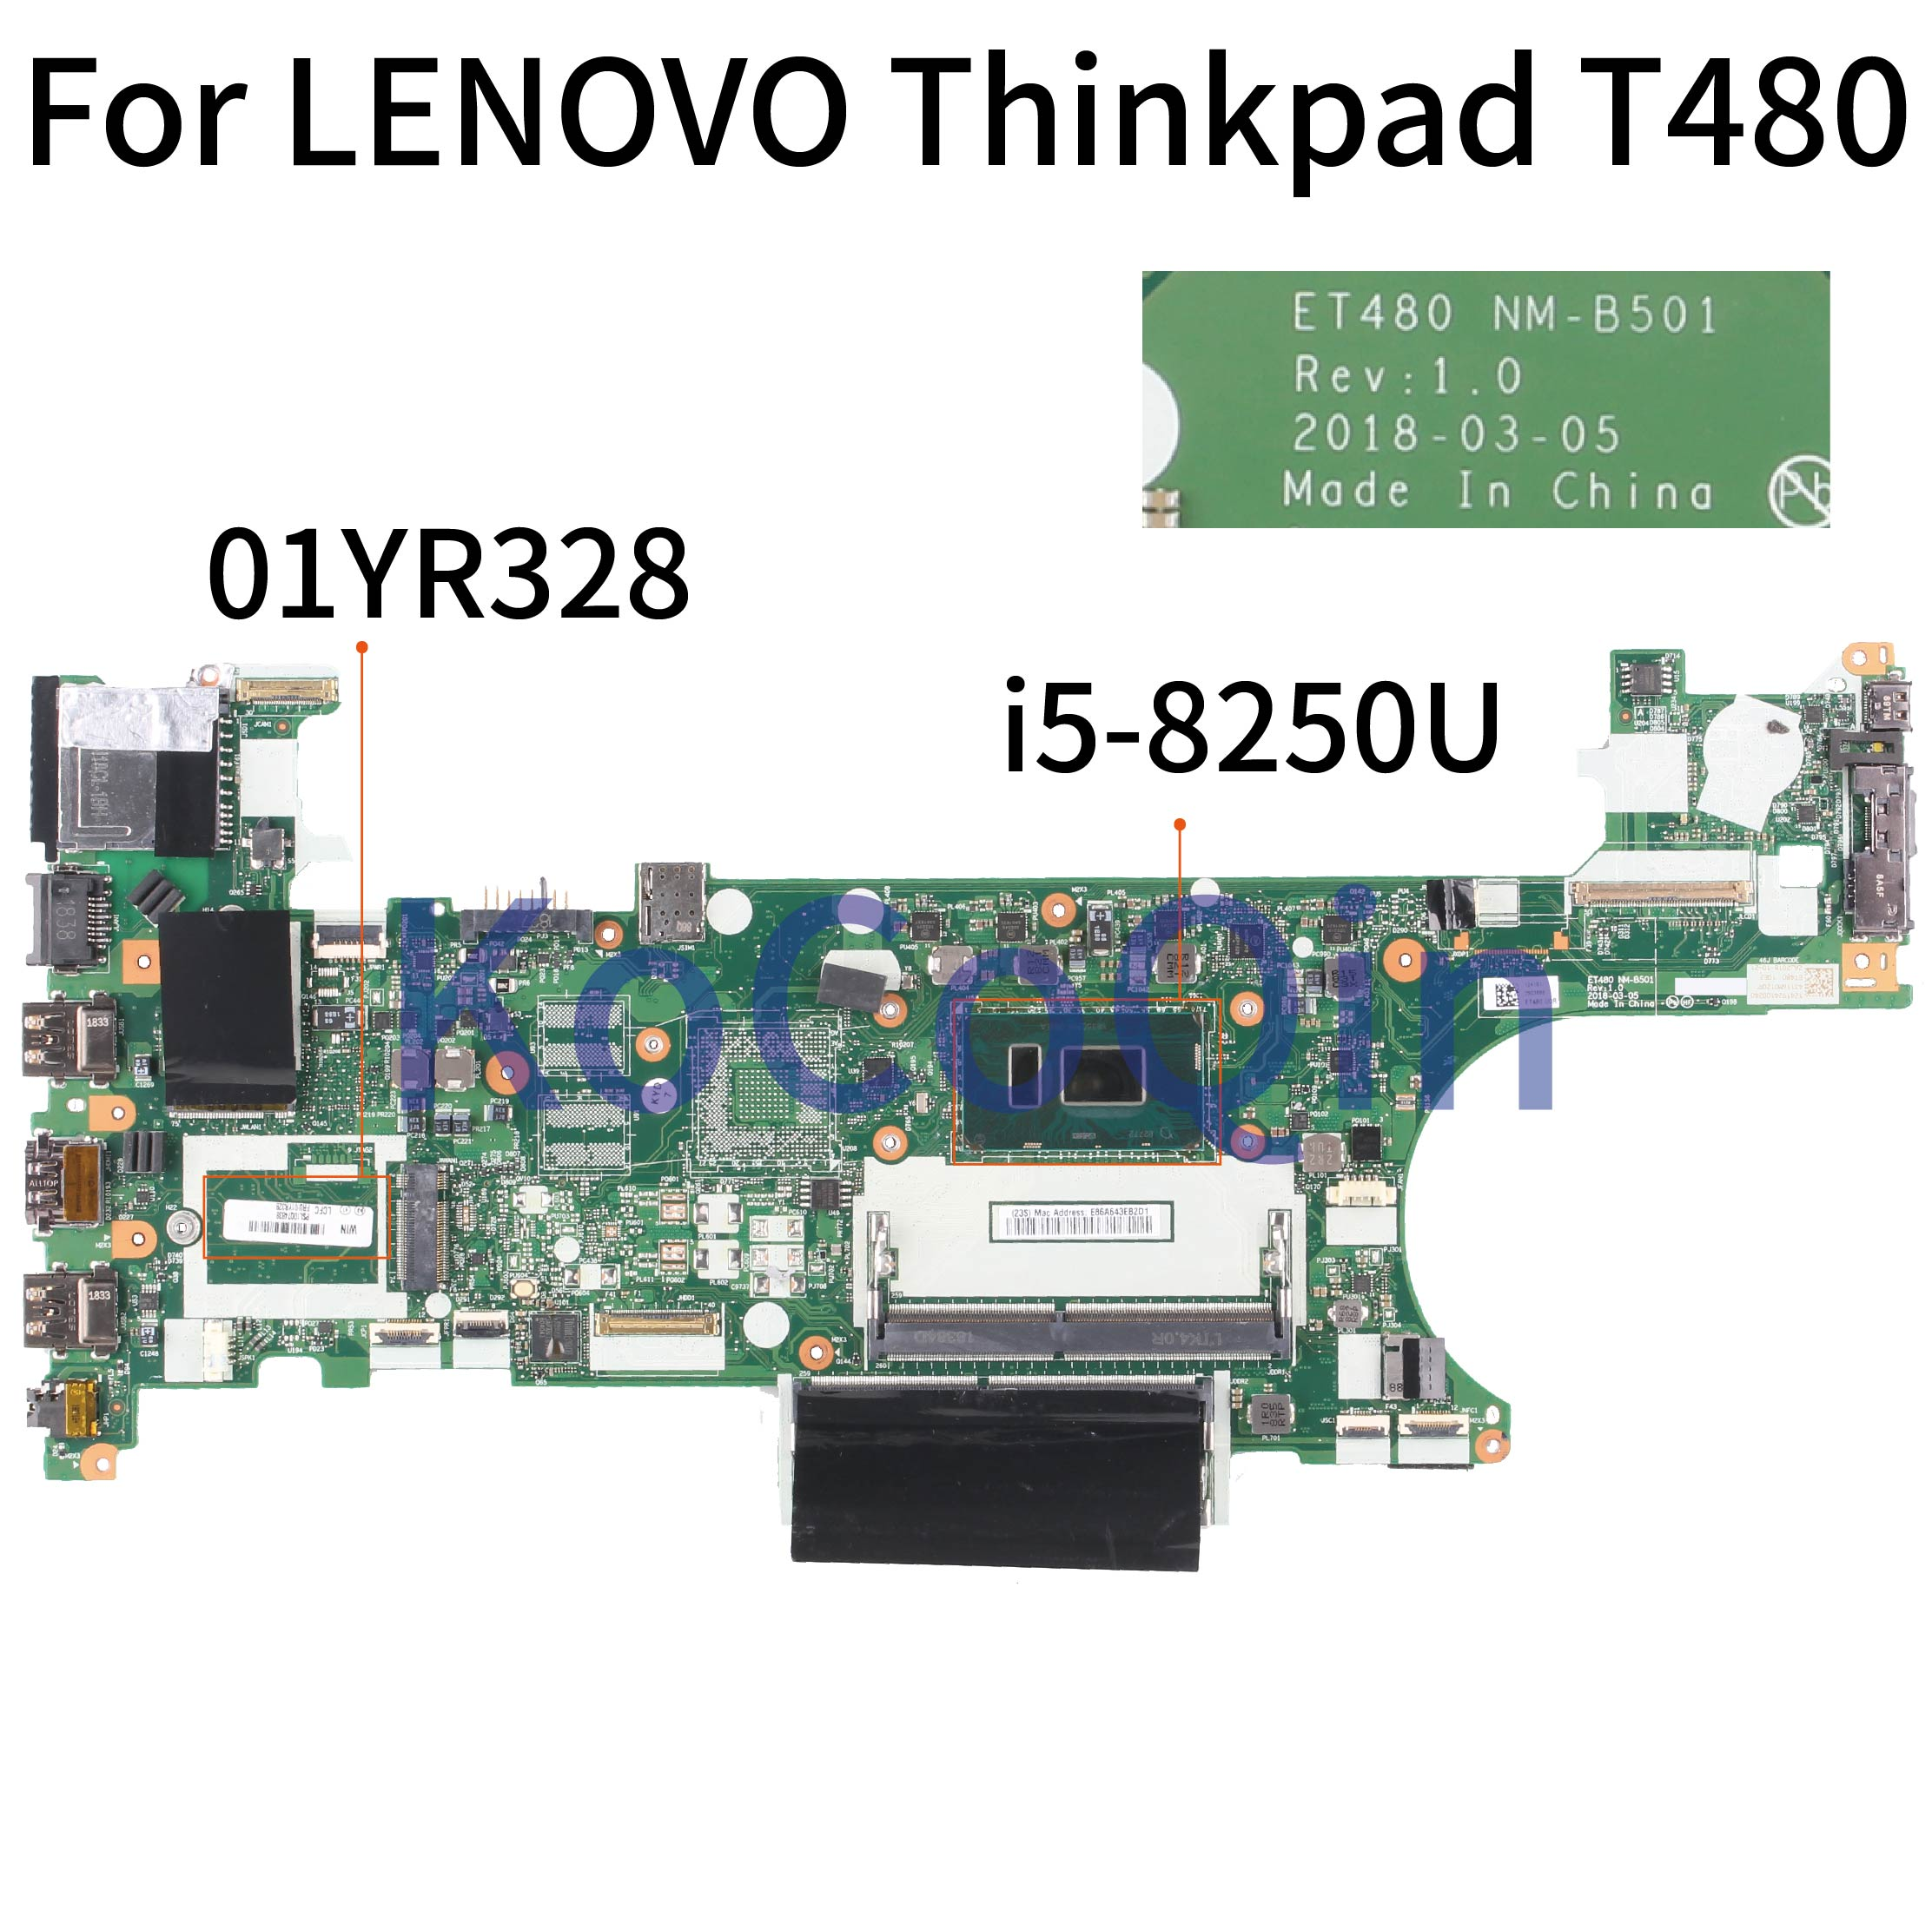 KoCoQin Laptop Motherboard For LENOVO Thinkpad T480 Core SR3LA I5-8250U Mainboard 01YR328 ET480 NM-B501 Tested 100%